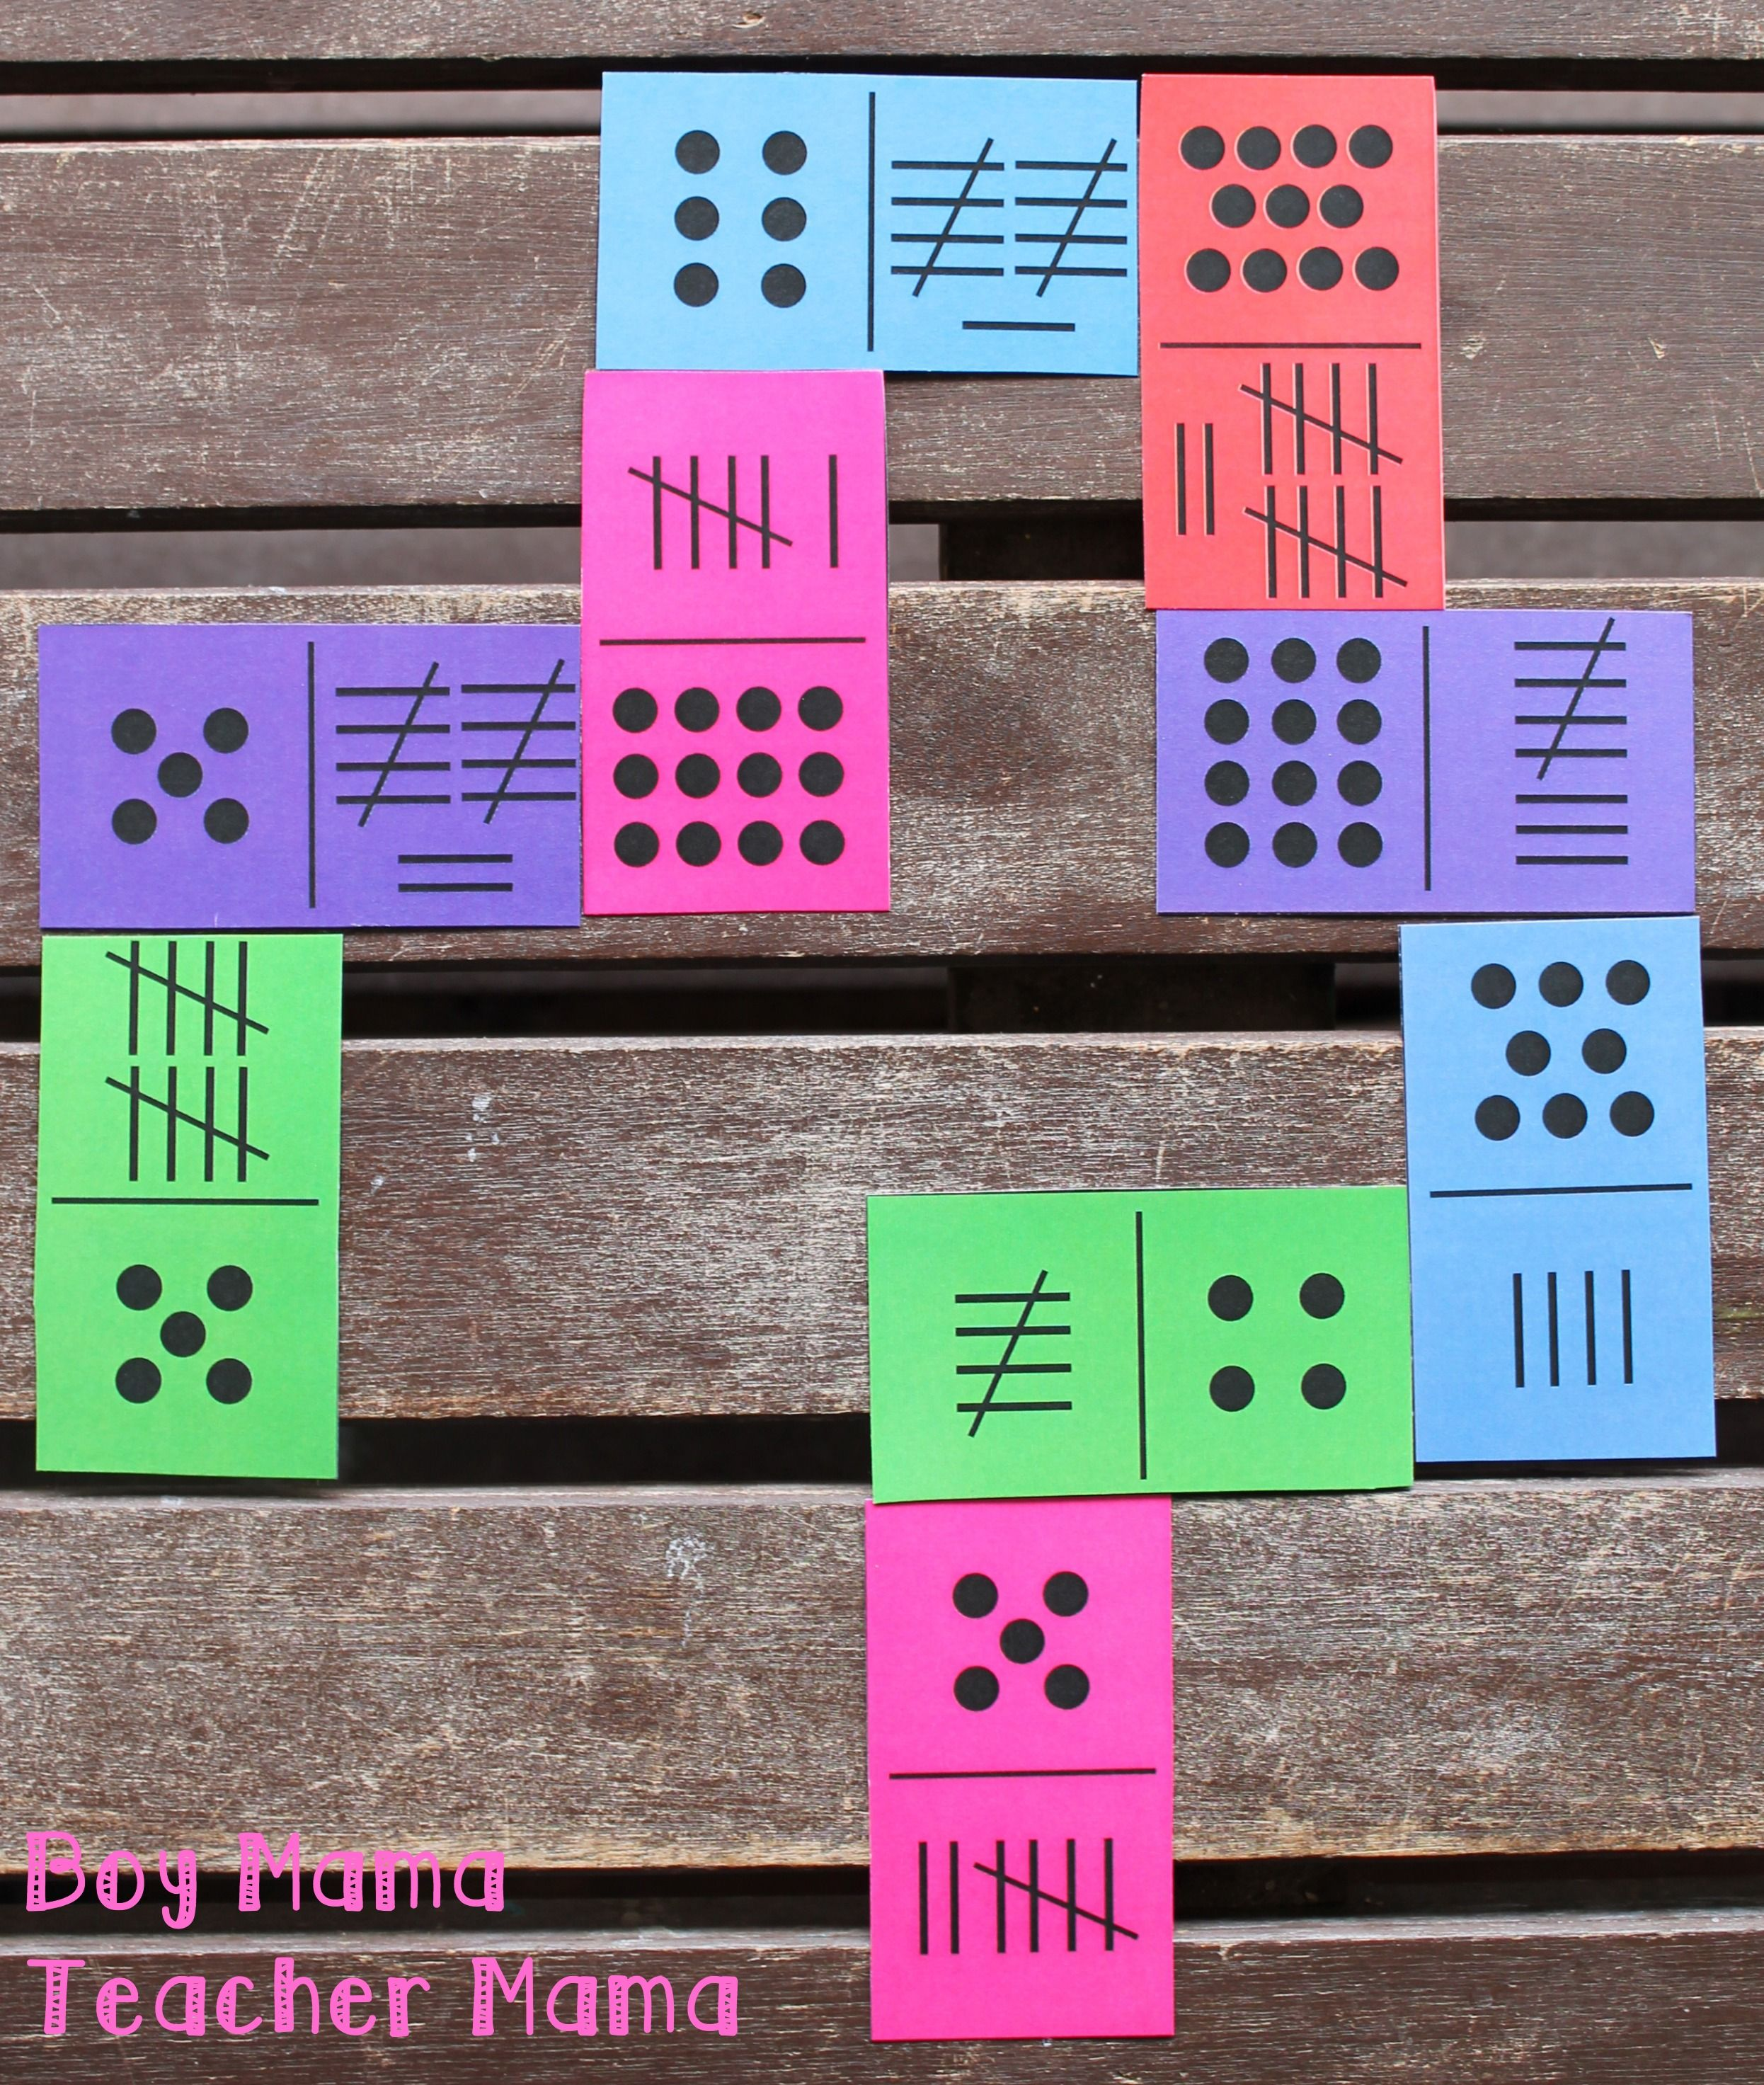 Teacher Mama Tally Mark Dominoes After School Linky In